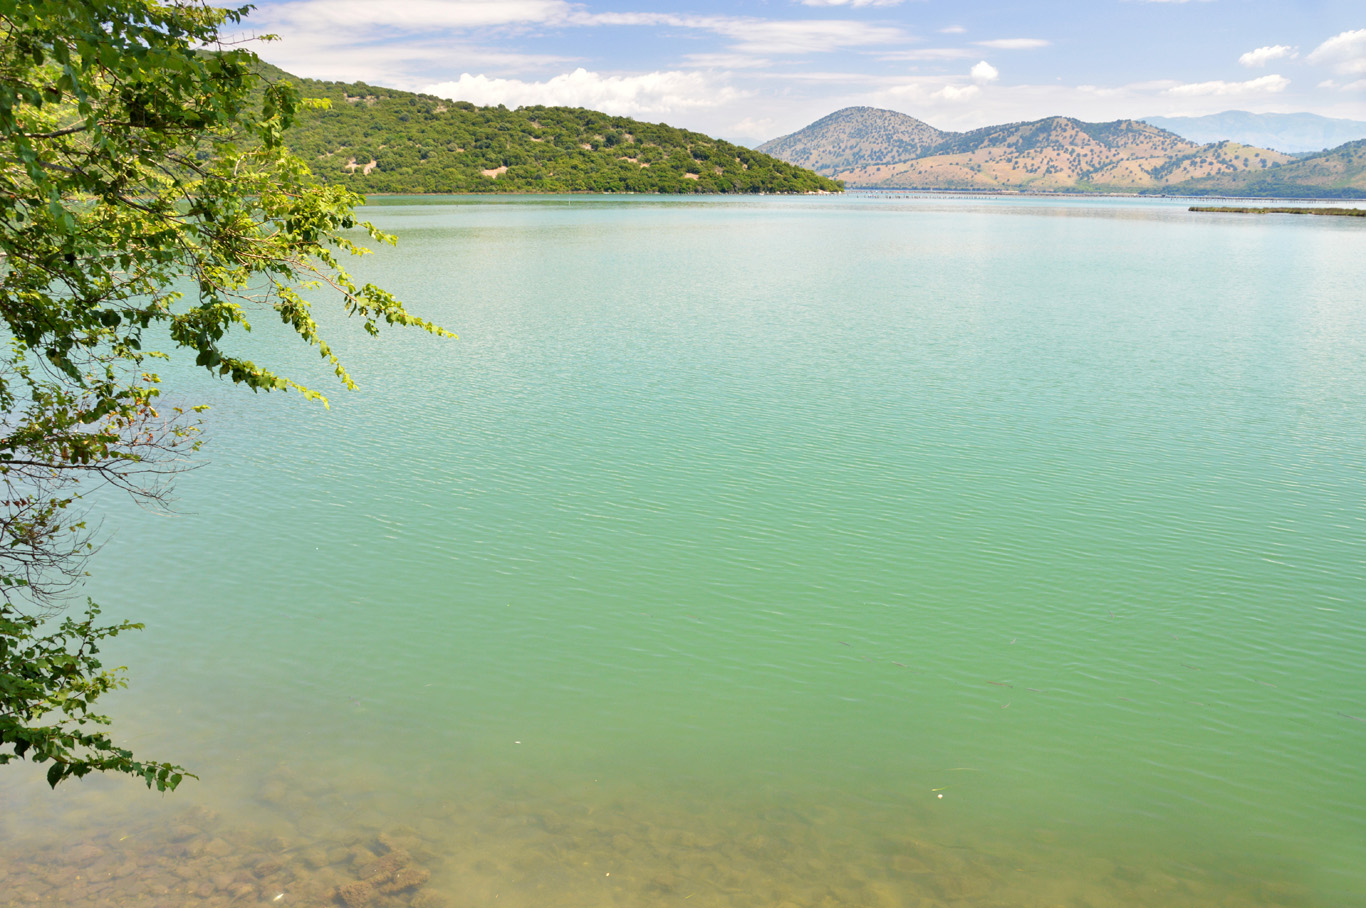 The lake surrounding Butrint